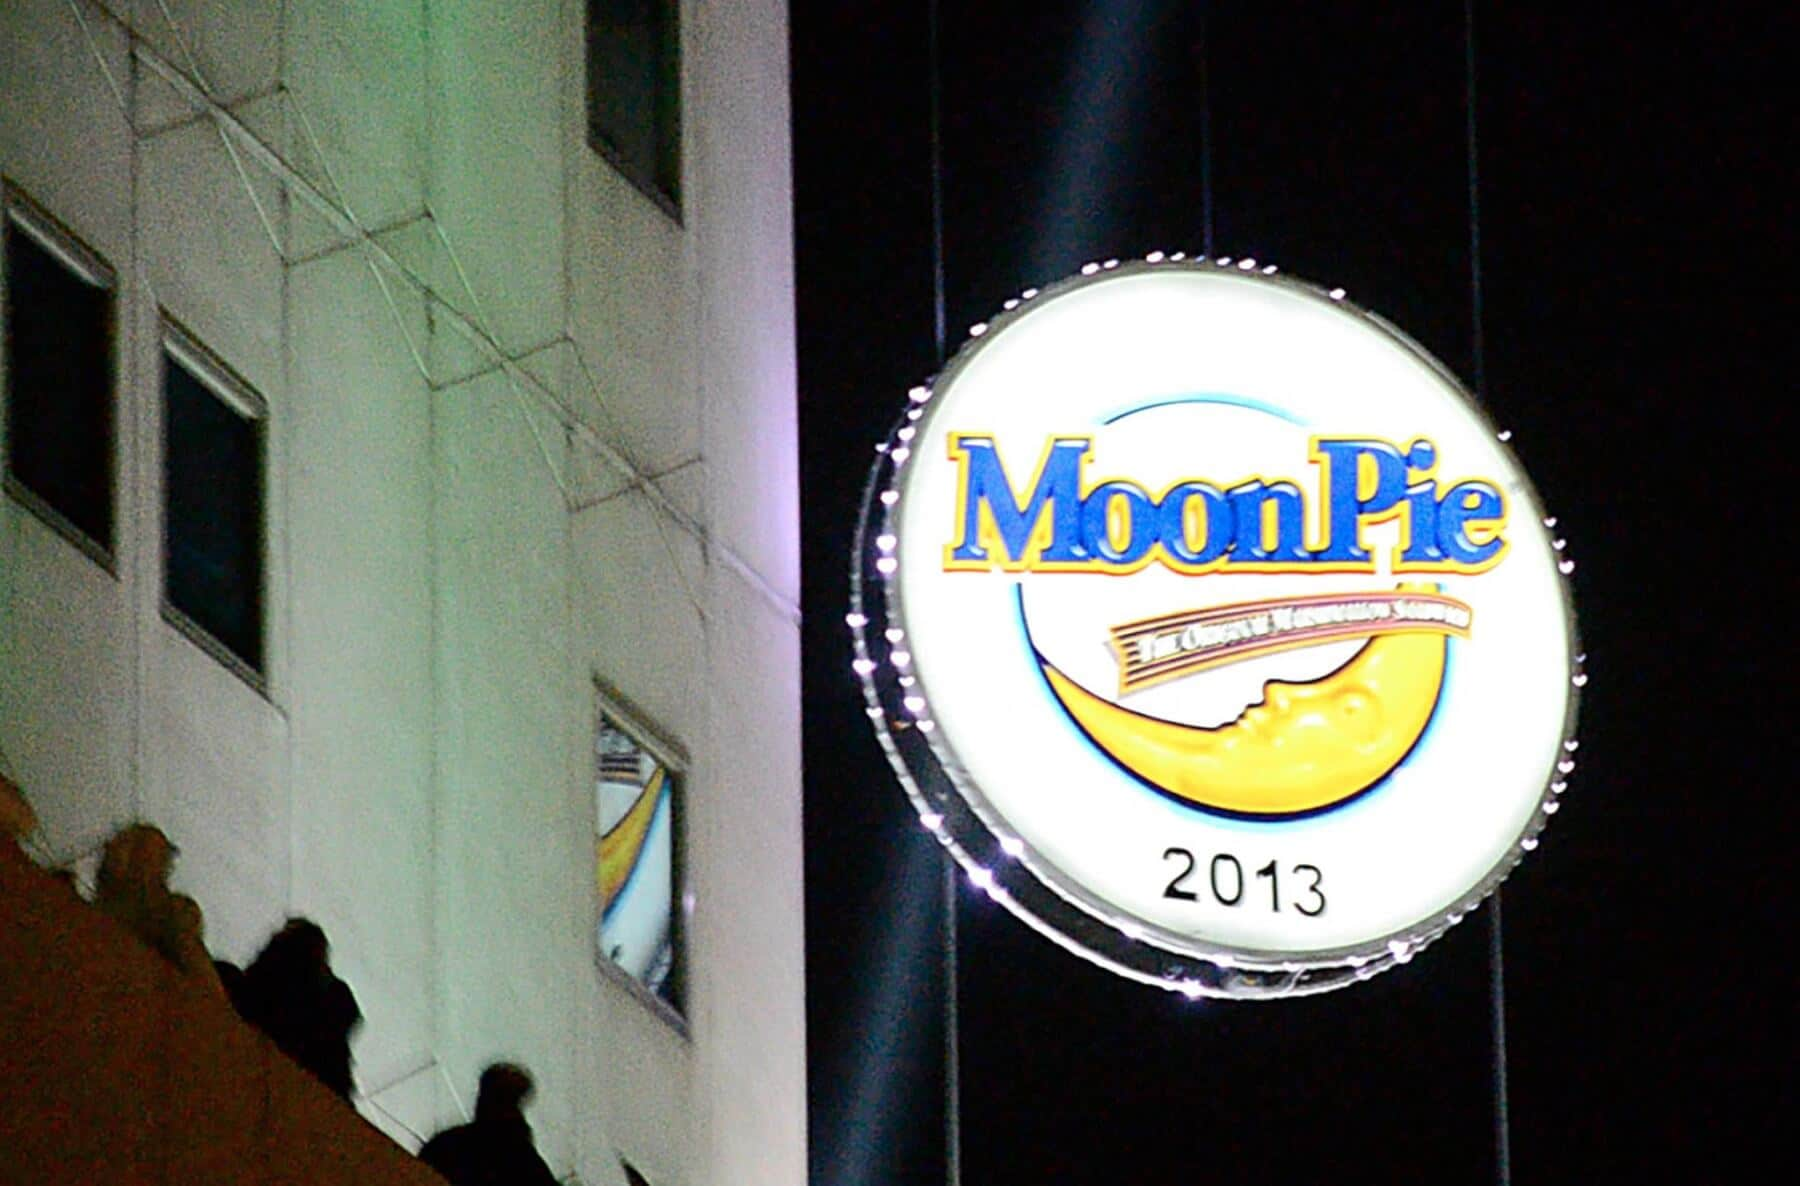 Audit shows MoonPie event received more money than disclosed